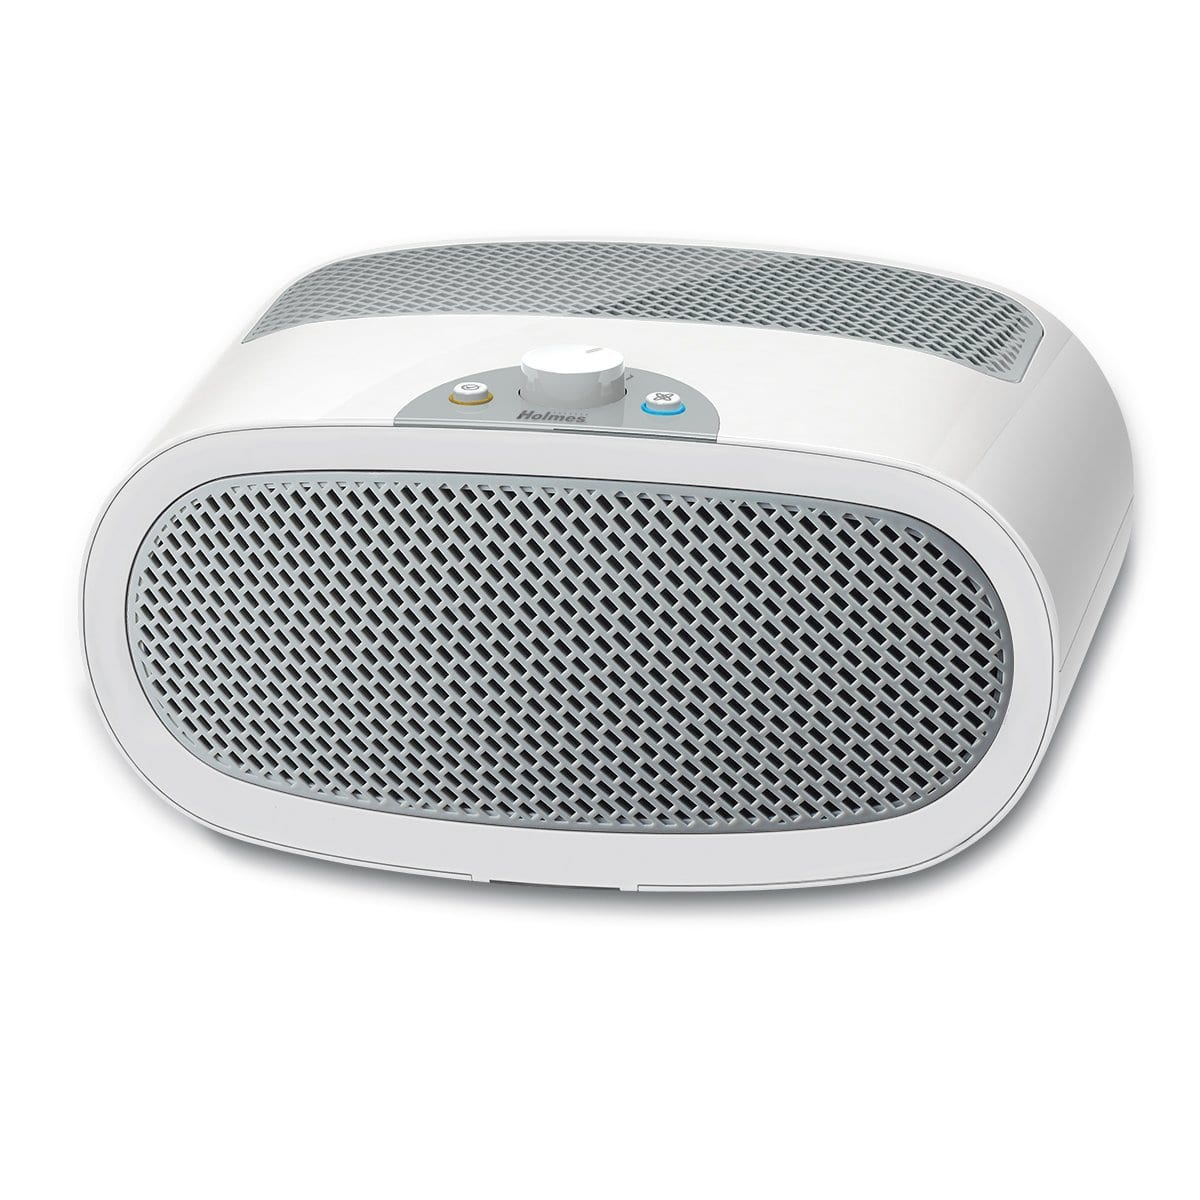 Holmes HEPA-Type Desktop Air Purifier with 3 Speeds and Quiet Operation, HAP9240 $35.35